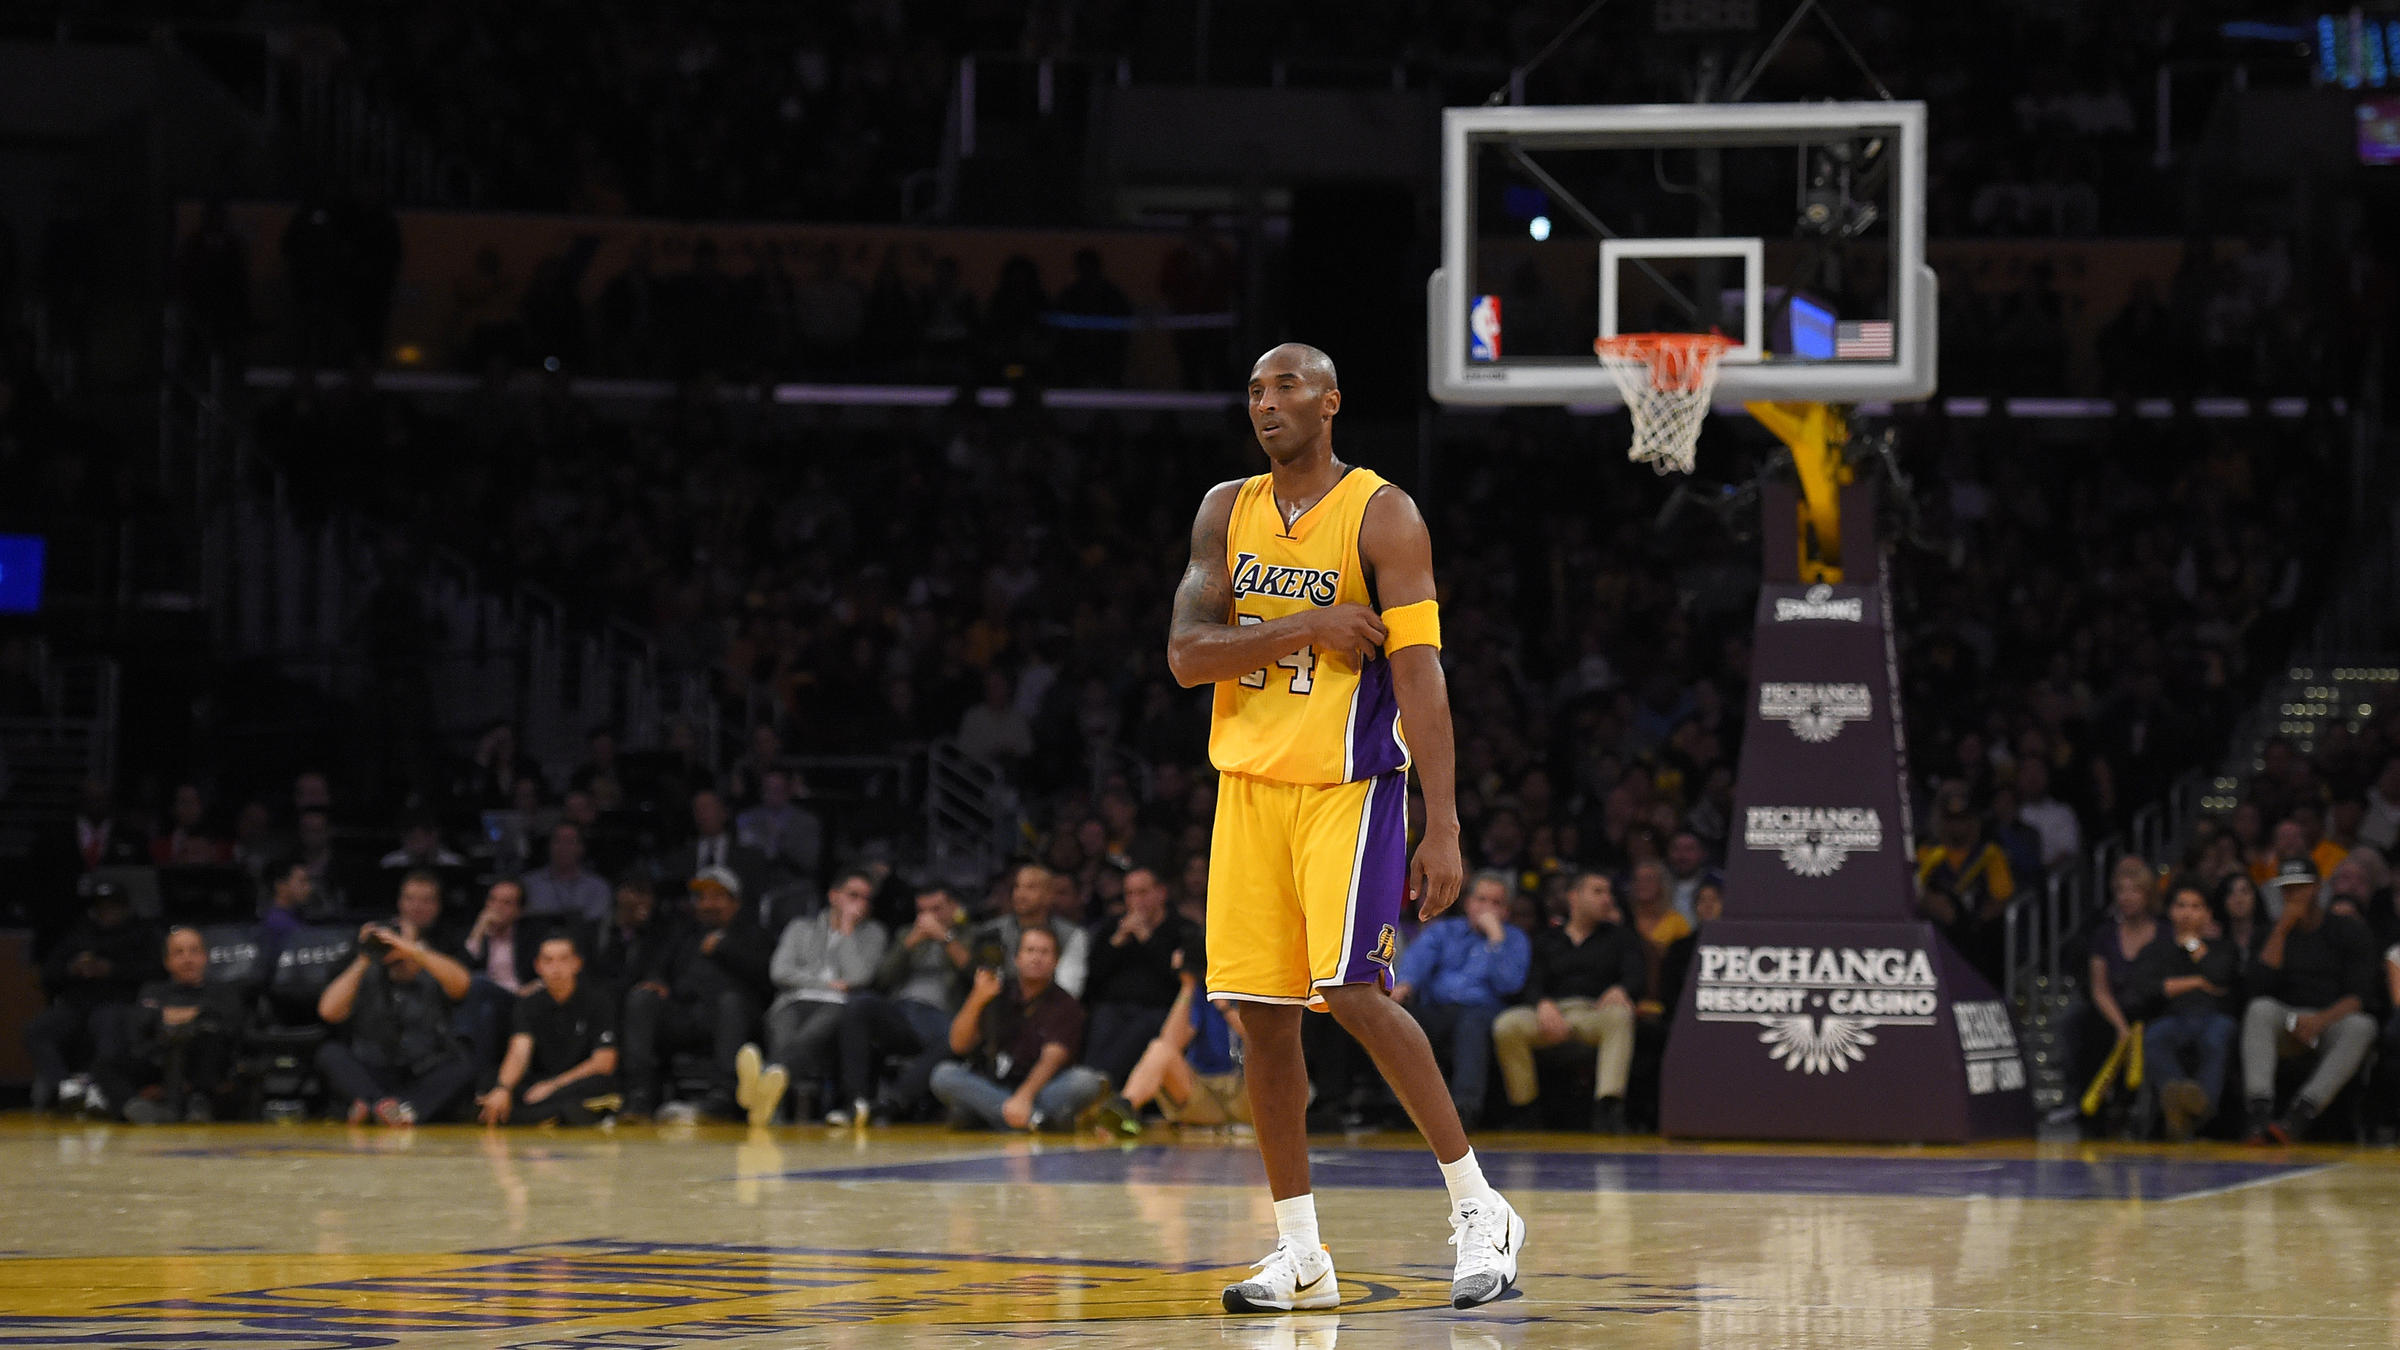 Nba Basketball Los Angeles Lakers: Kobe Bryant Announces Retirement (In The Form Of A Poem